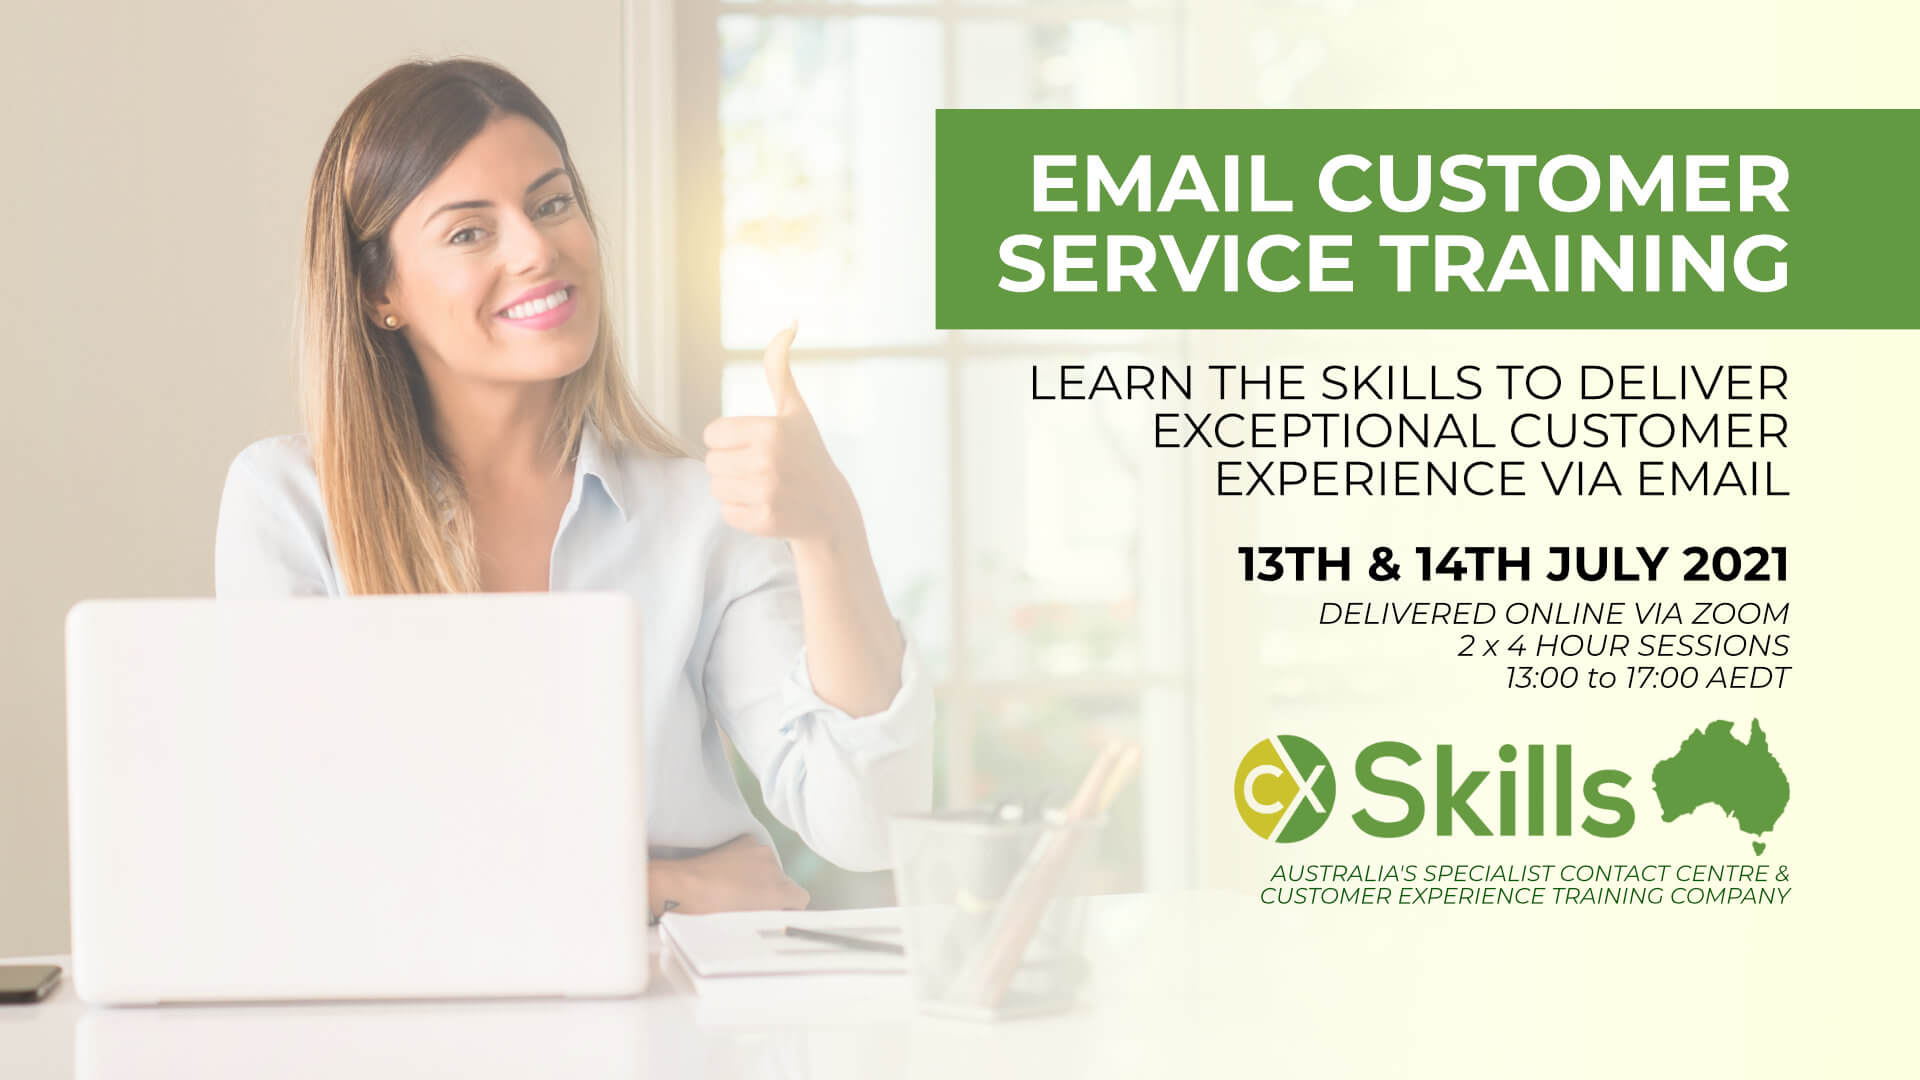 Customer Service training for emails July 2021